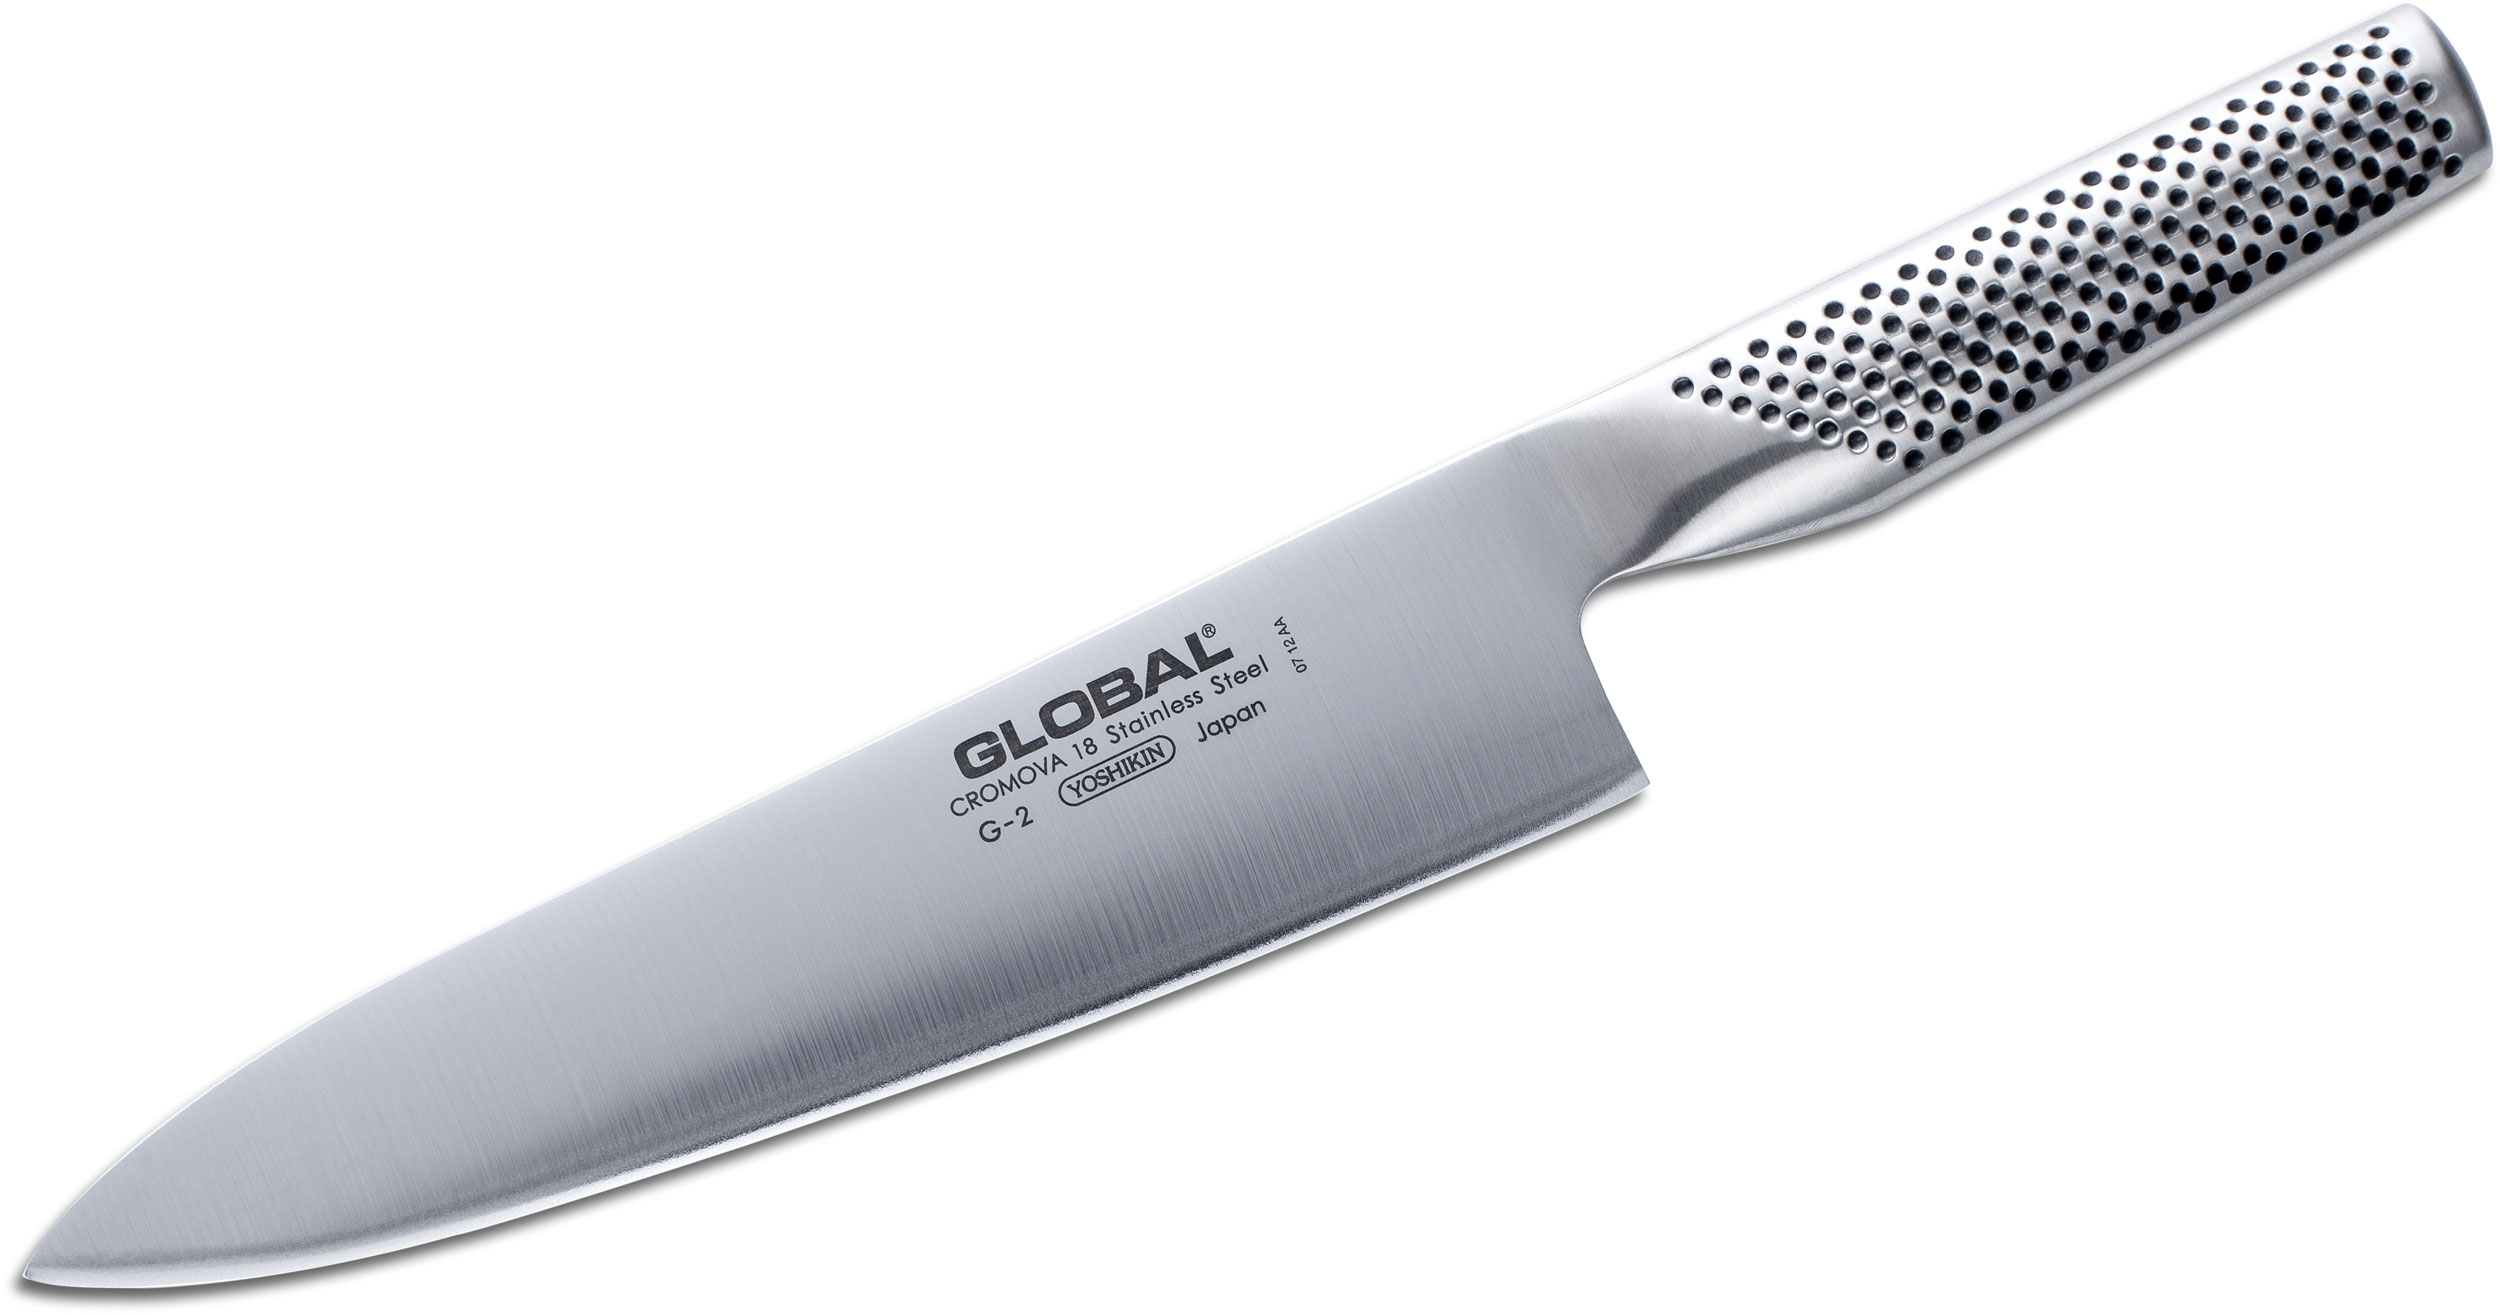 Global G-2 Classic 8 inch Chef's Knife